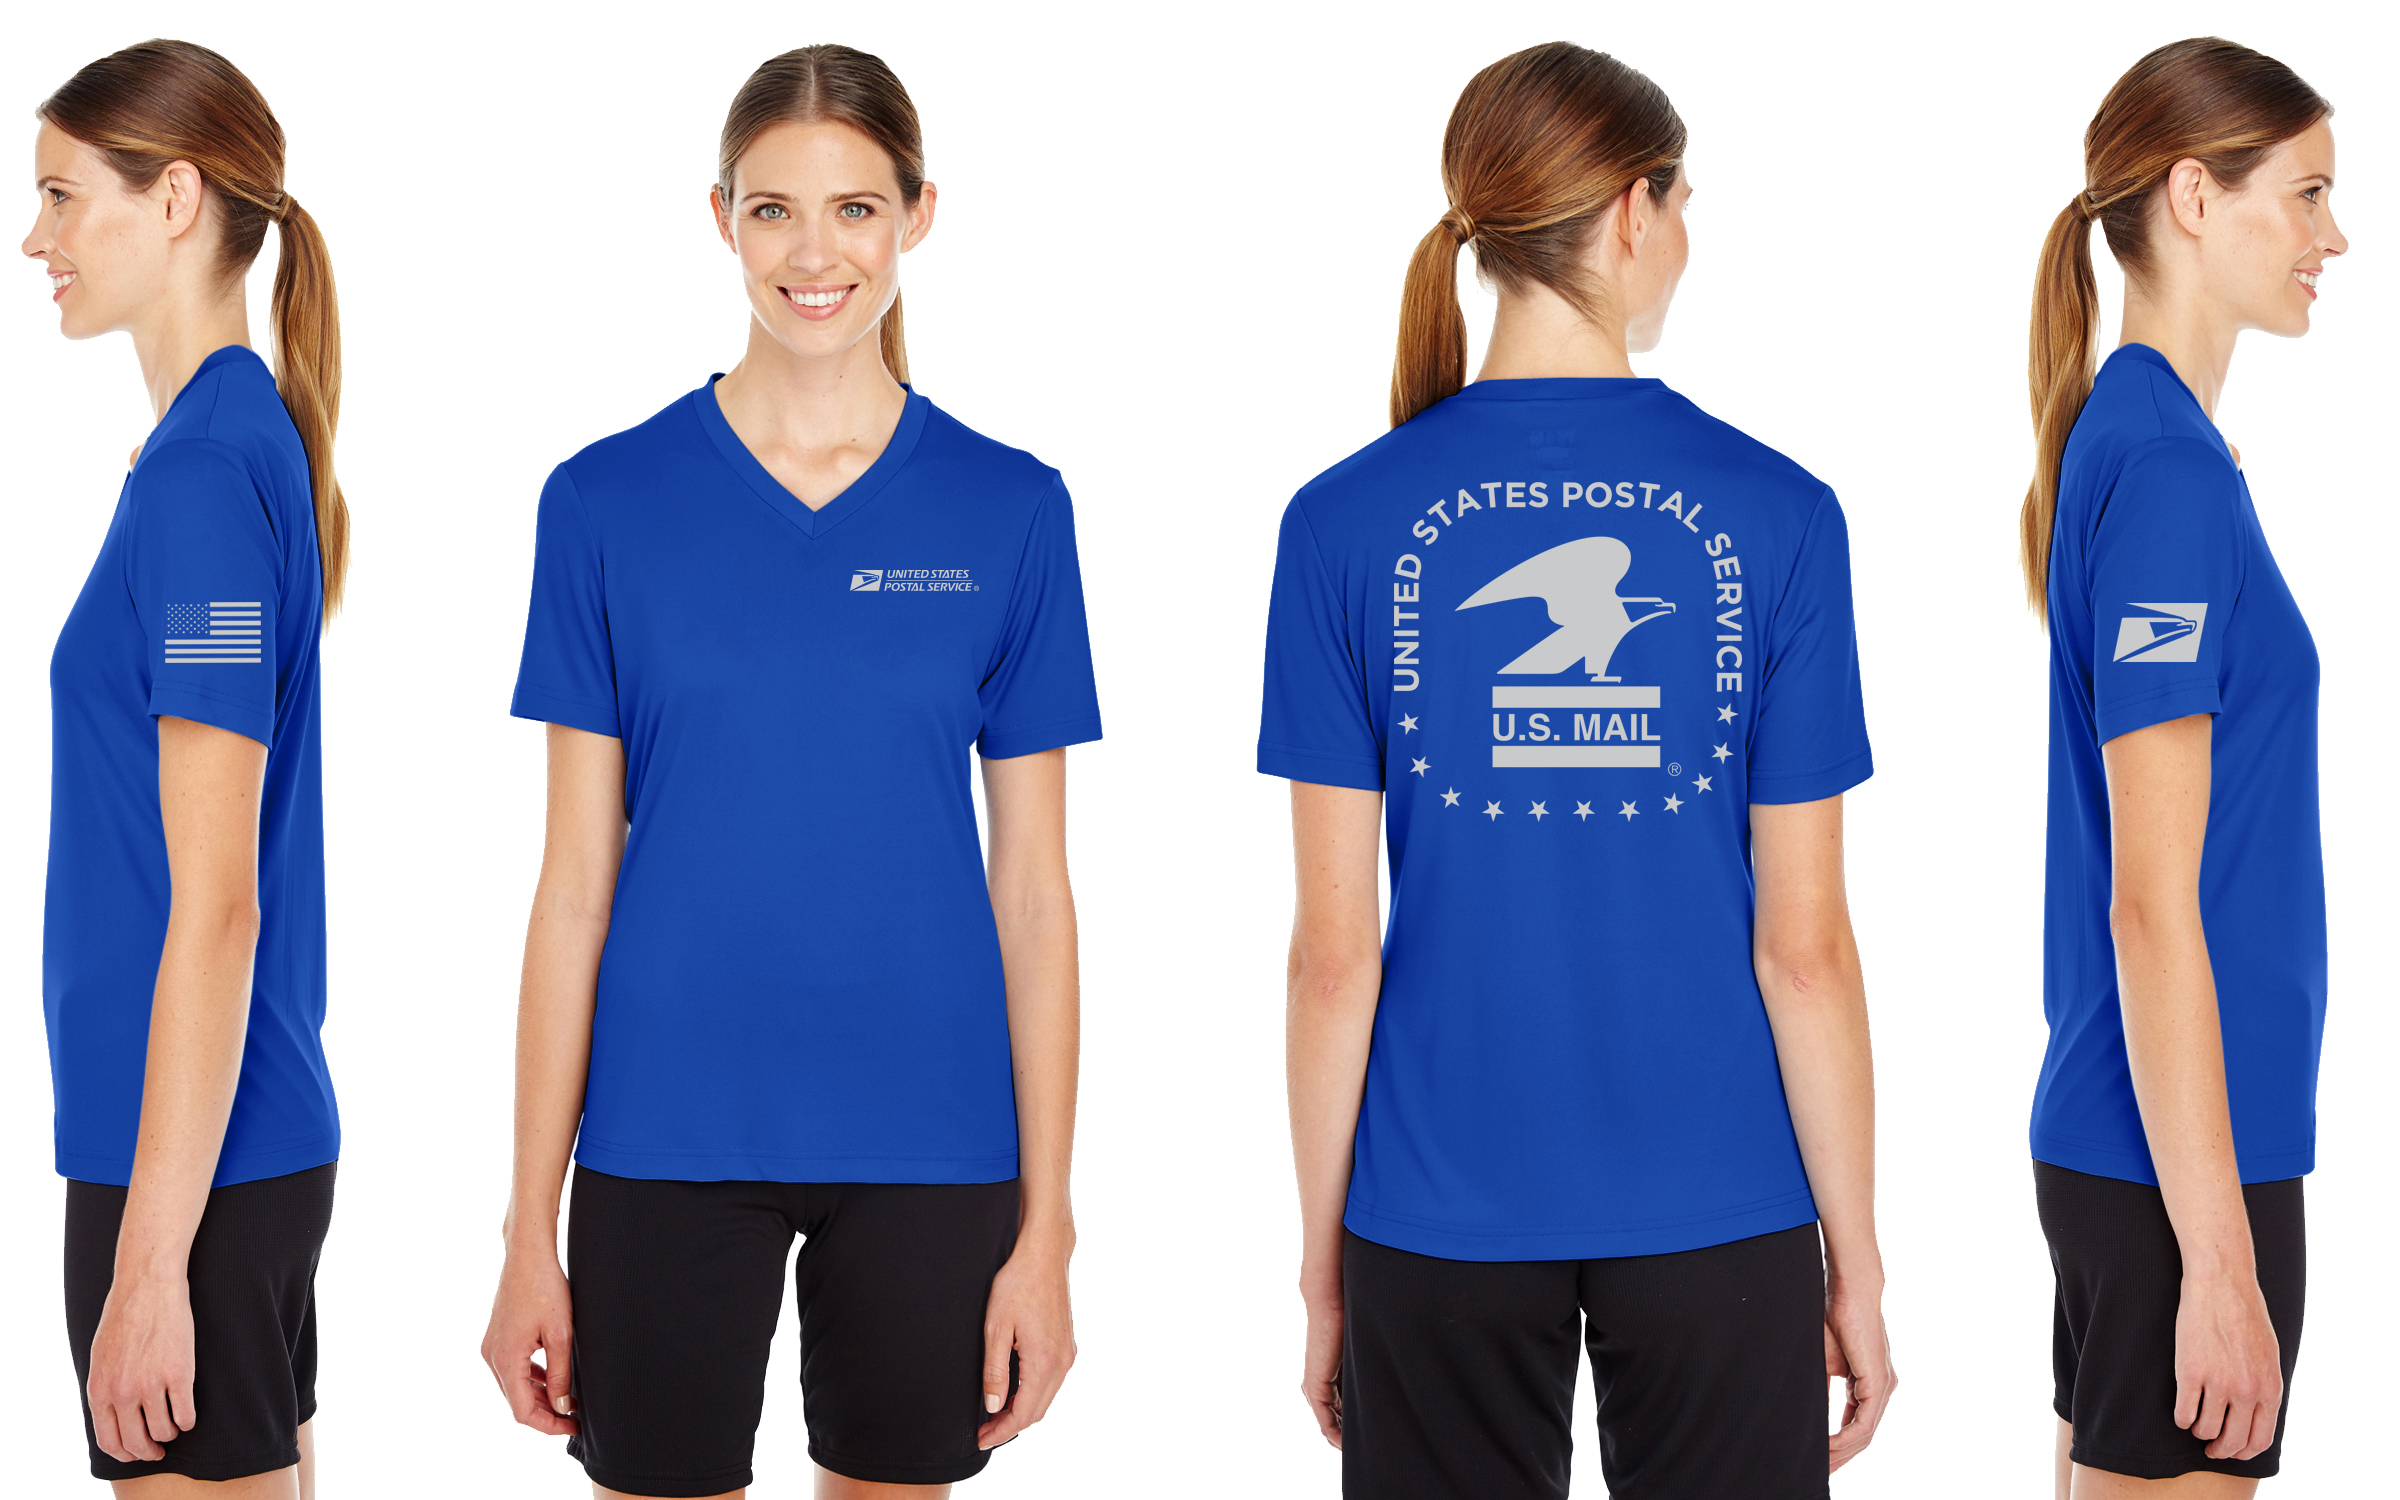 Usps Performance Shirt Women 407 Prints